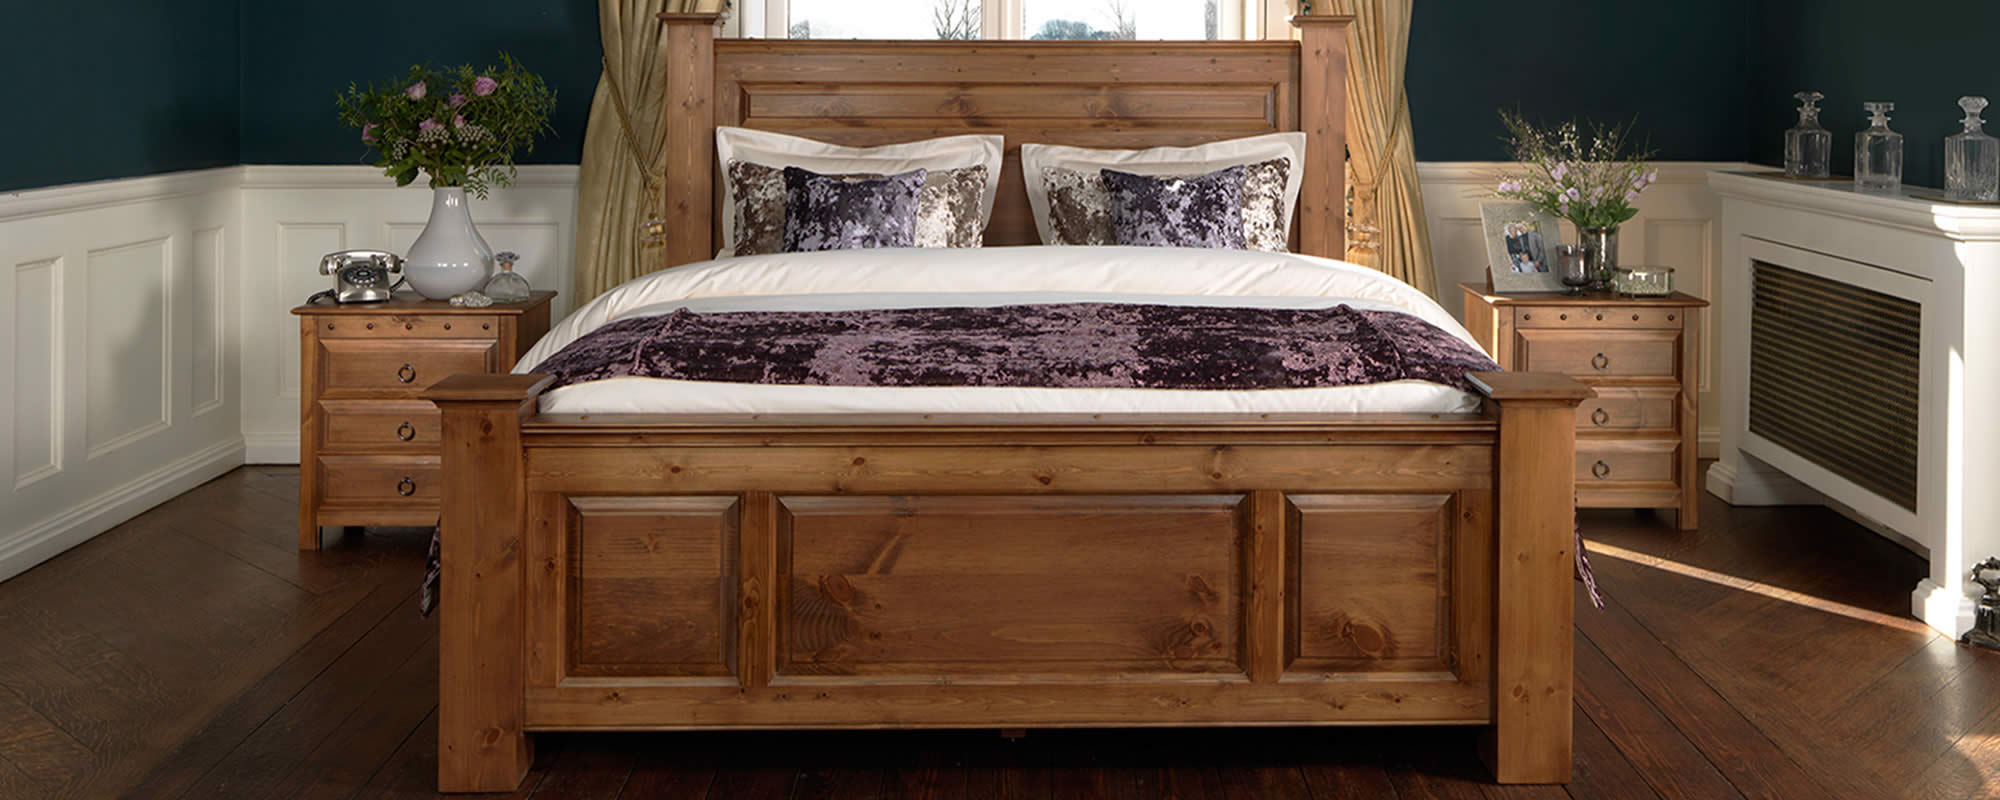 Handmade solid oak beds sleigh four poster traditional revival beds Wooden bed furniture